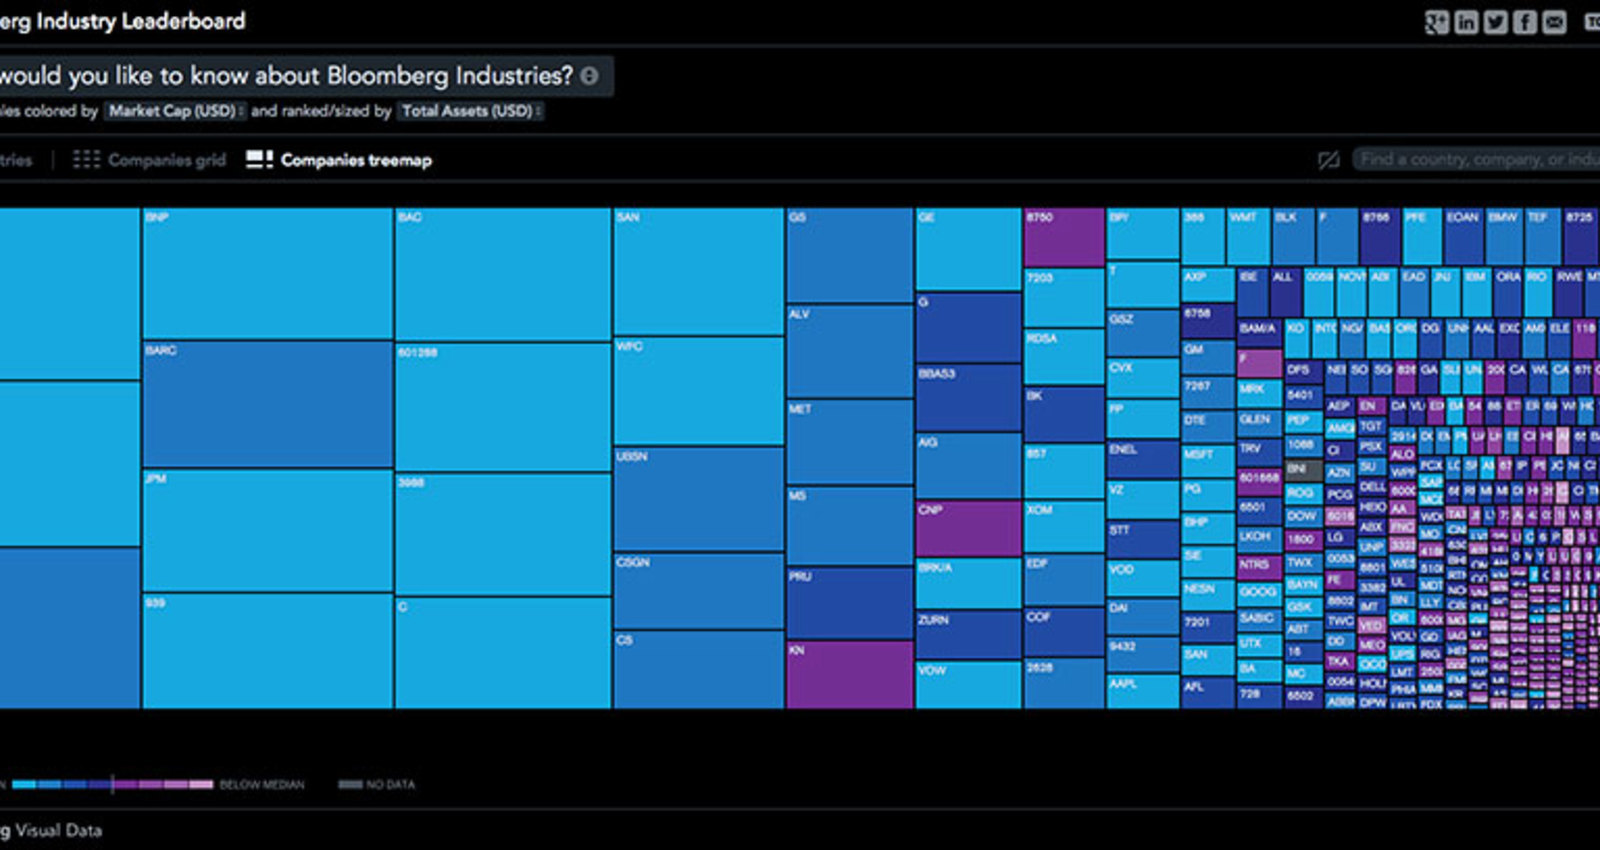 Bloomberg Industry Leaderboard